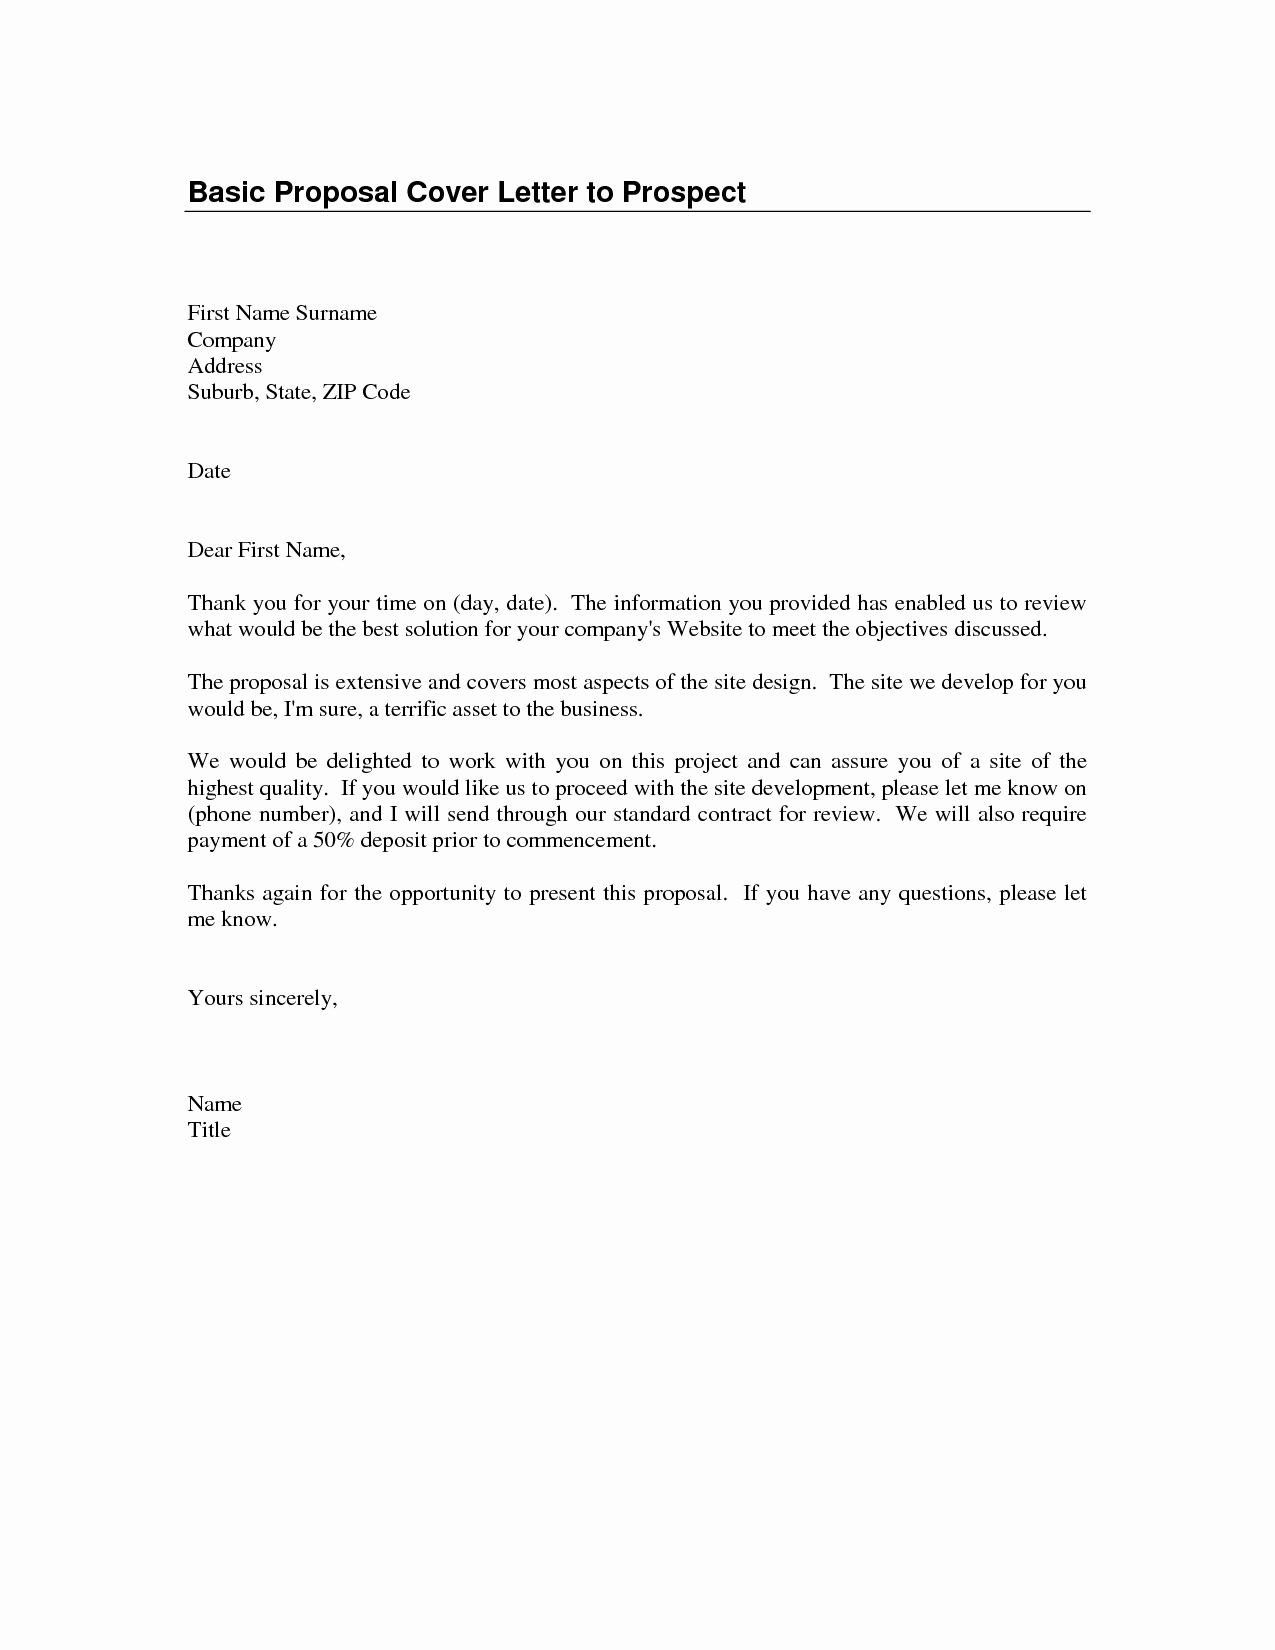 Cover Letter Template Doc Fresh All Cover Letter Samples for Professionals